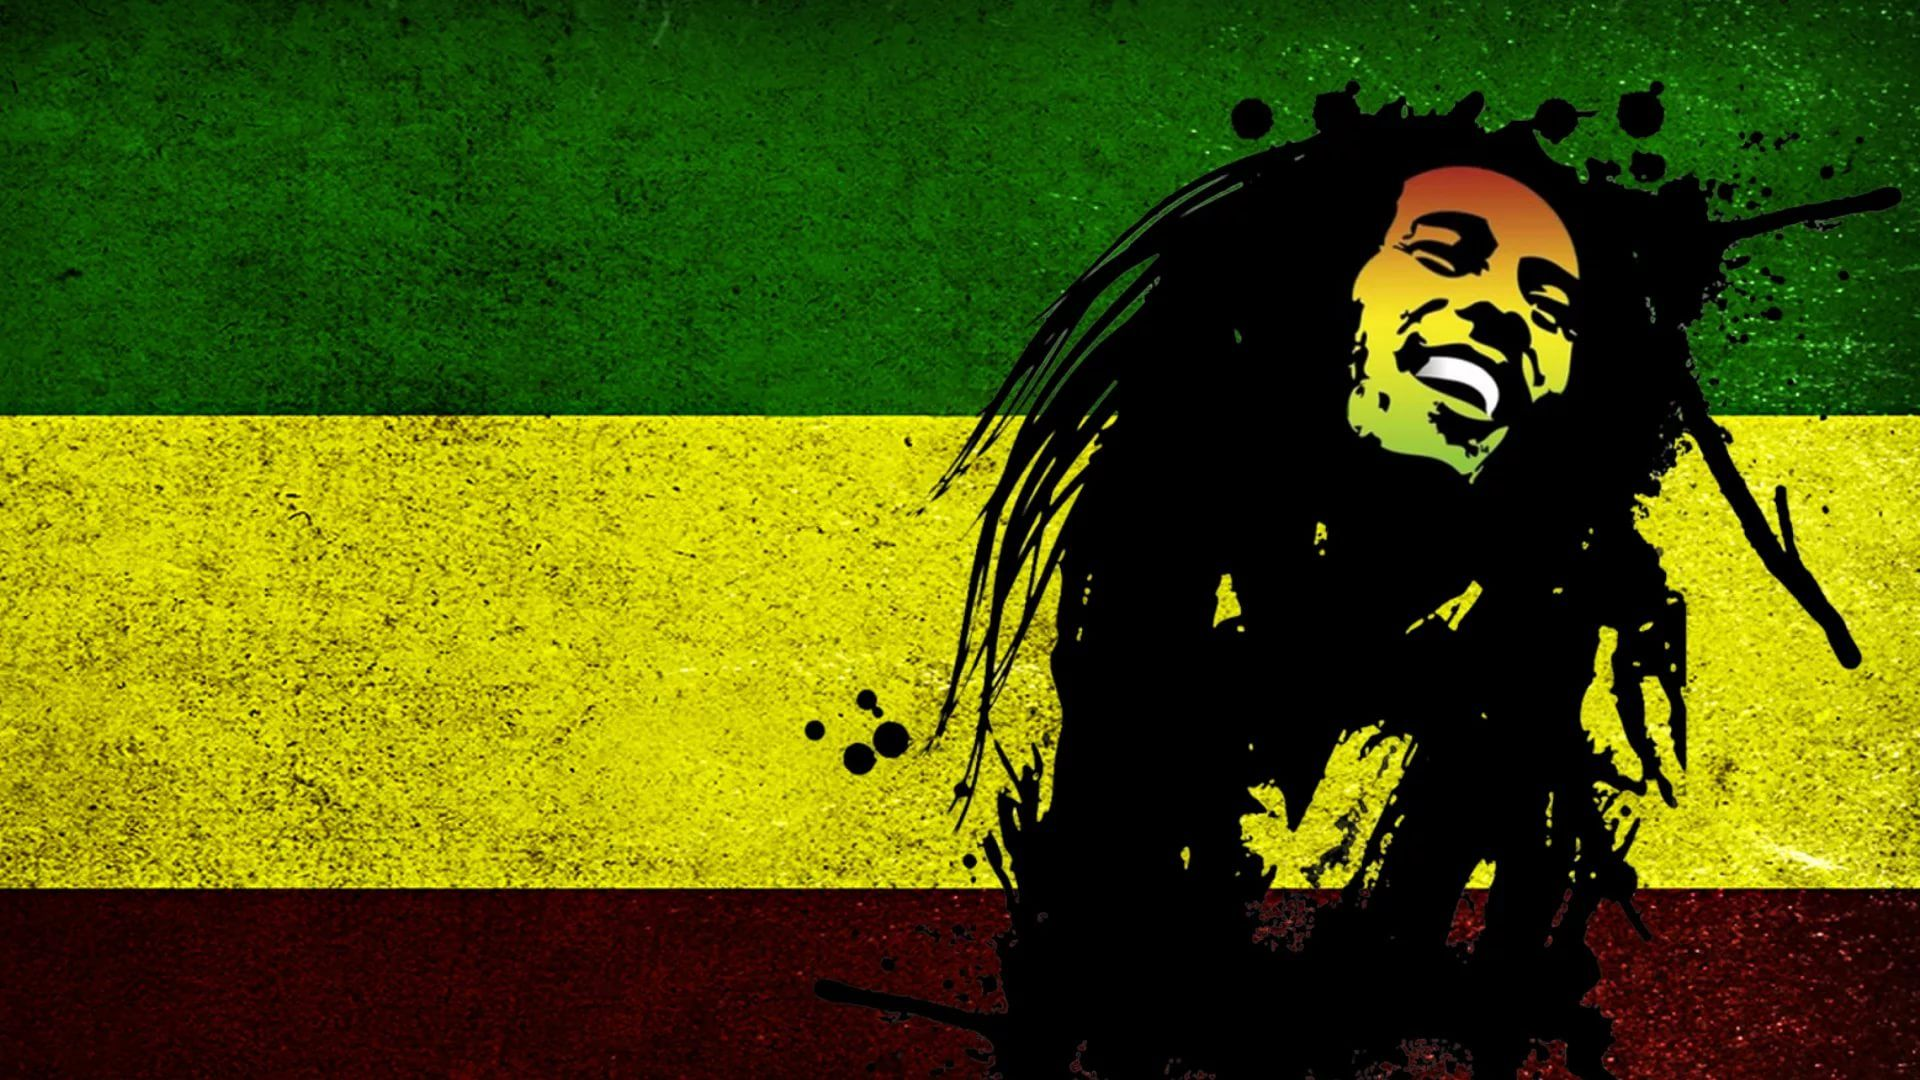 Bob Marley Background Wallpaper